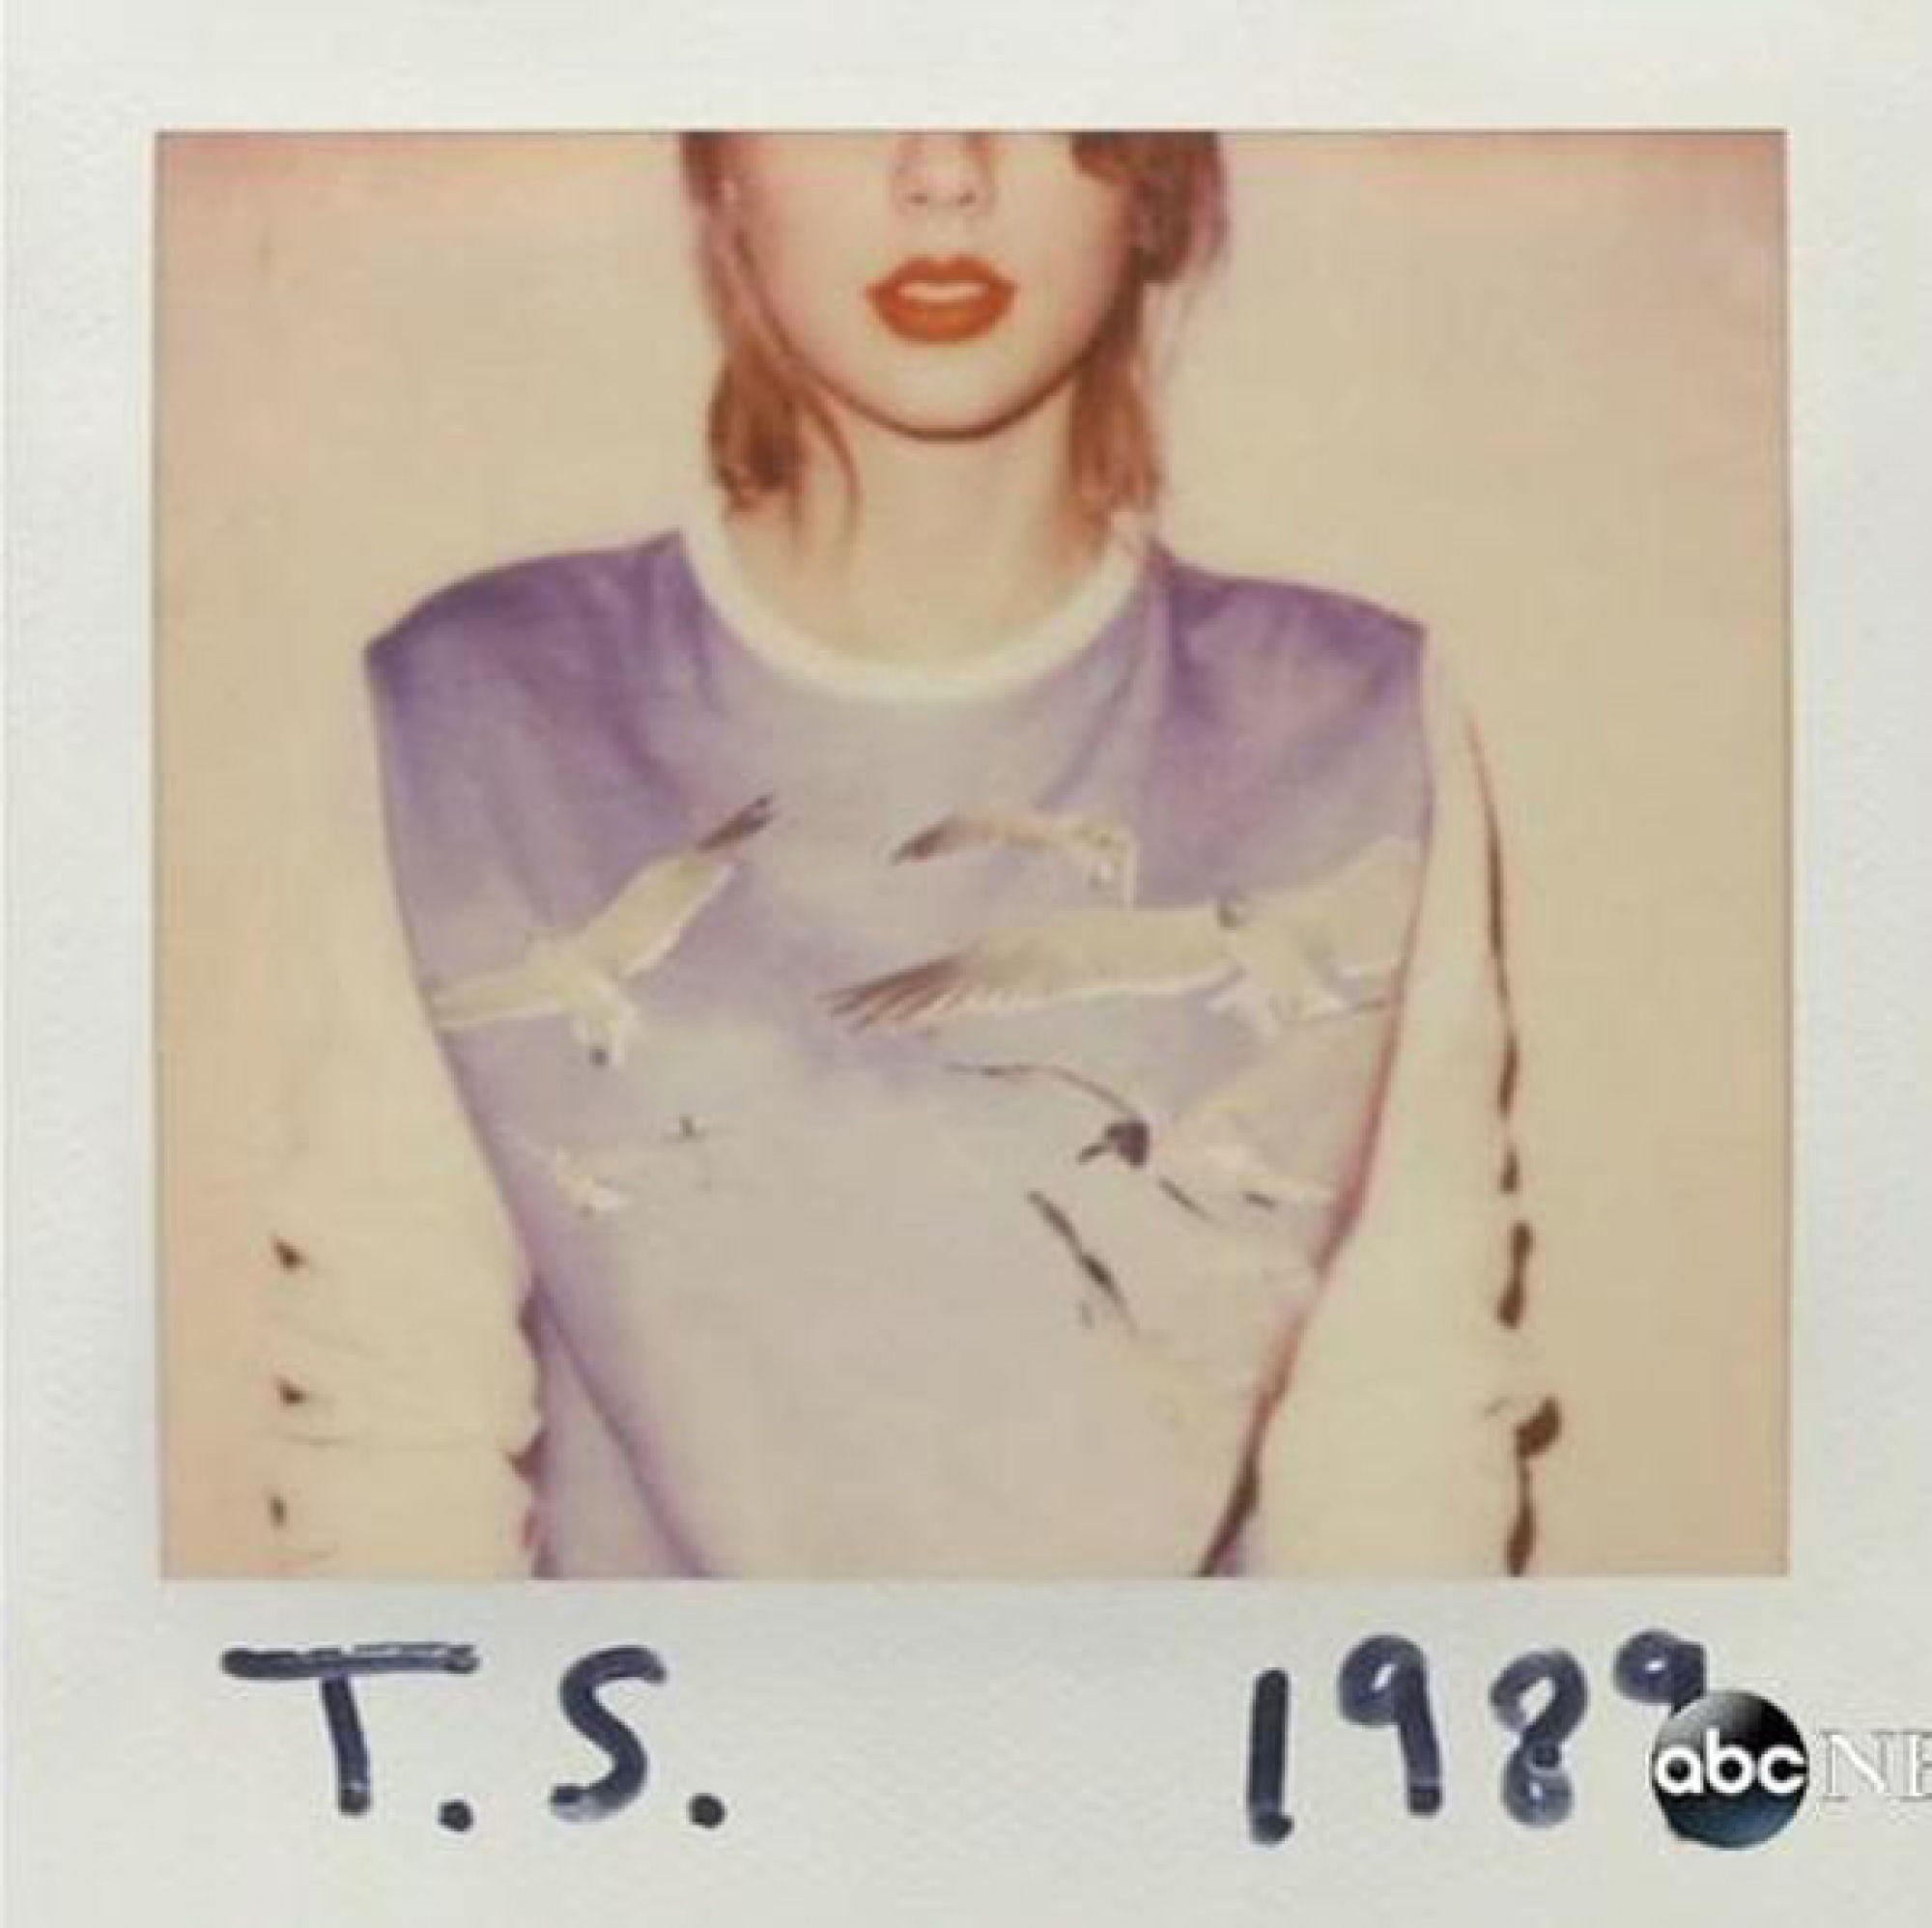 Taylor Swift - 1989 - Album Leaks